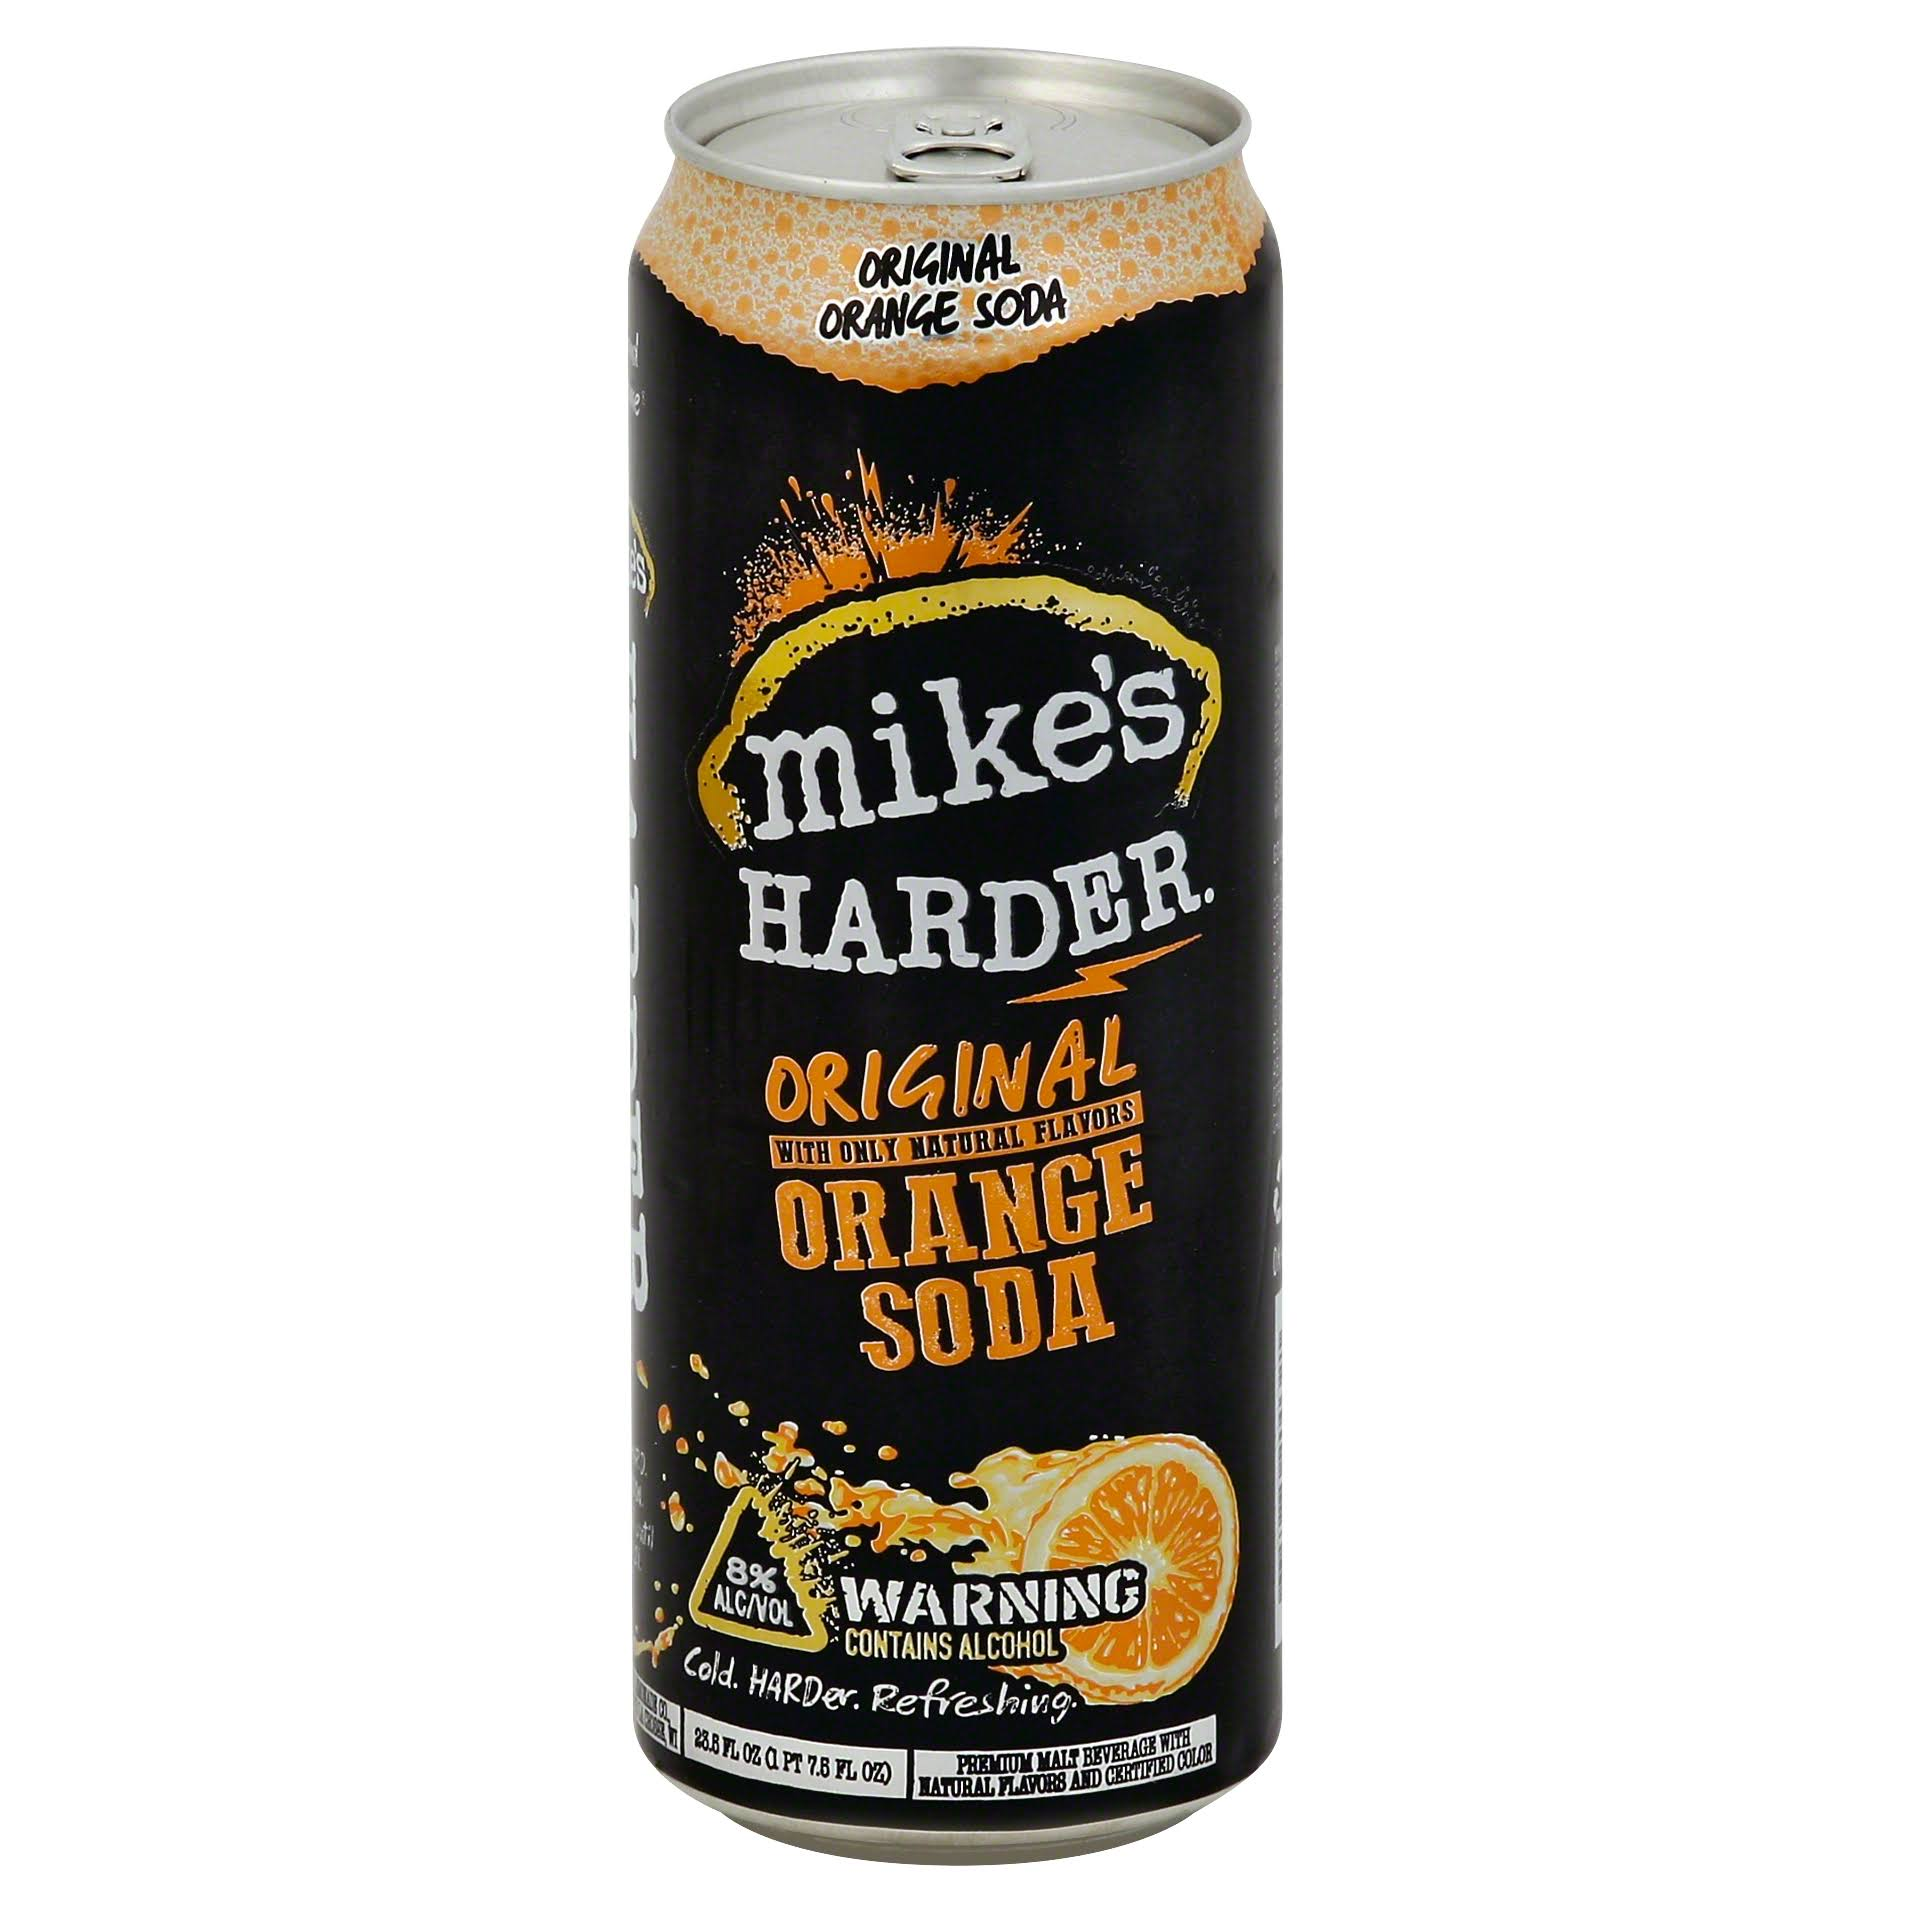 Mikes Harder Malt Beverage, Original Orange Soda - 23.5 fl oz